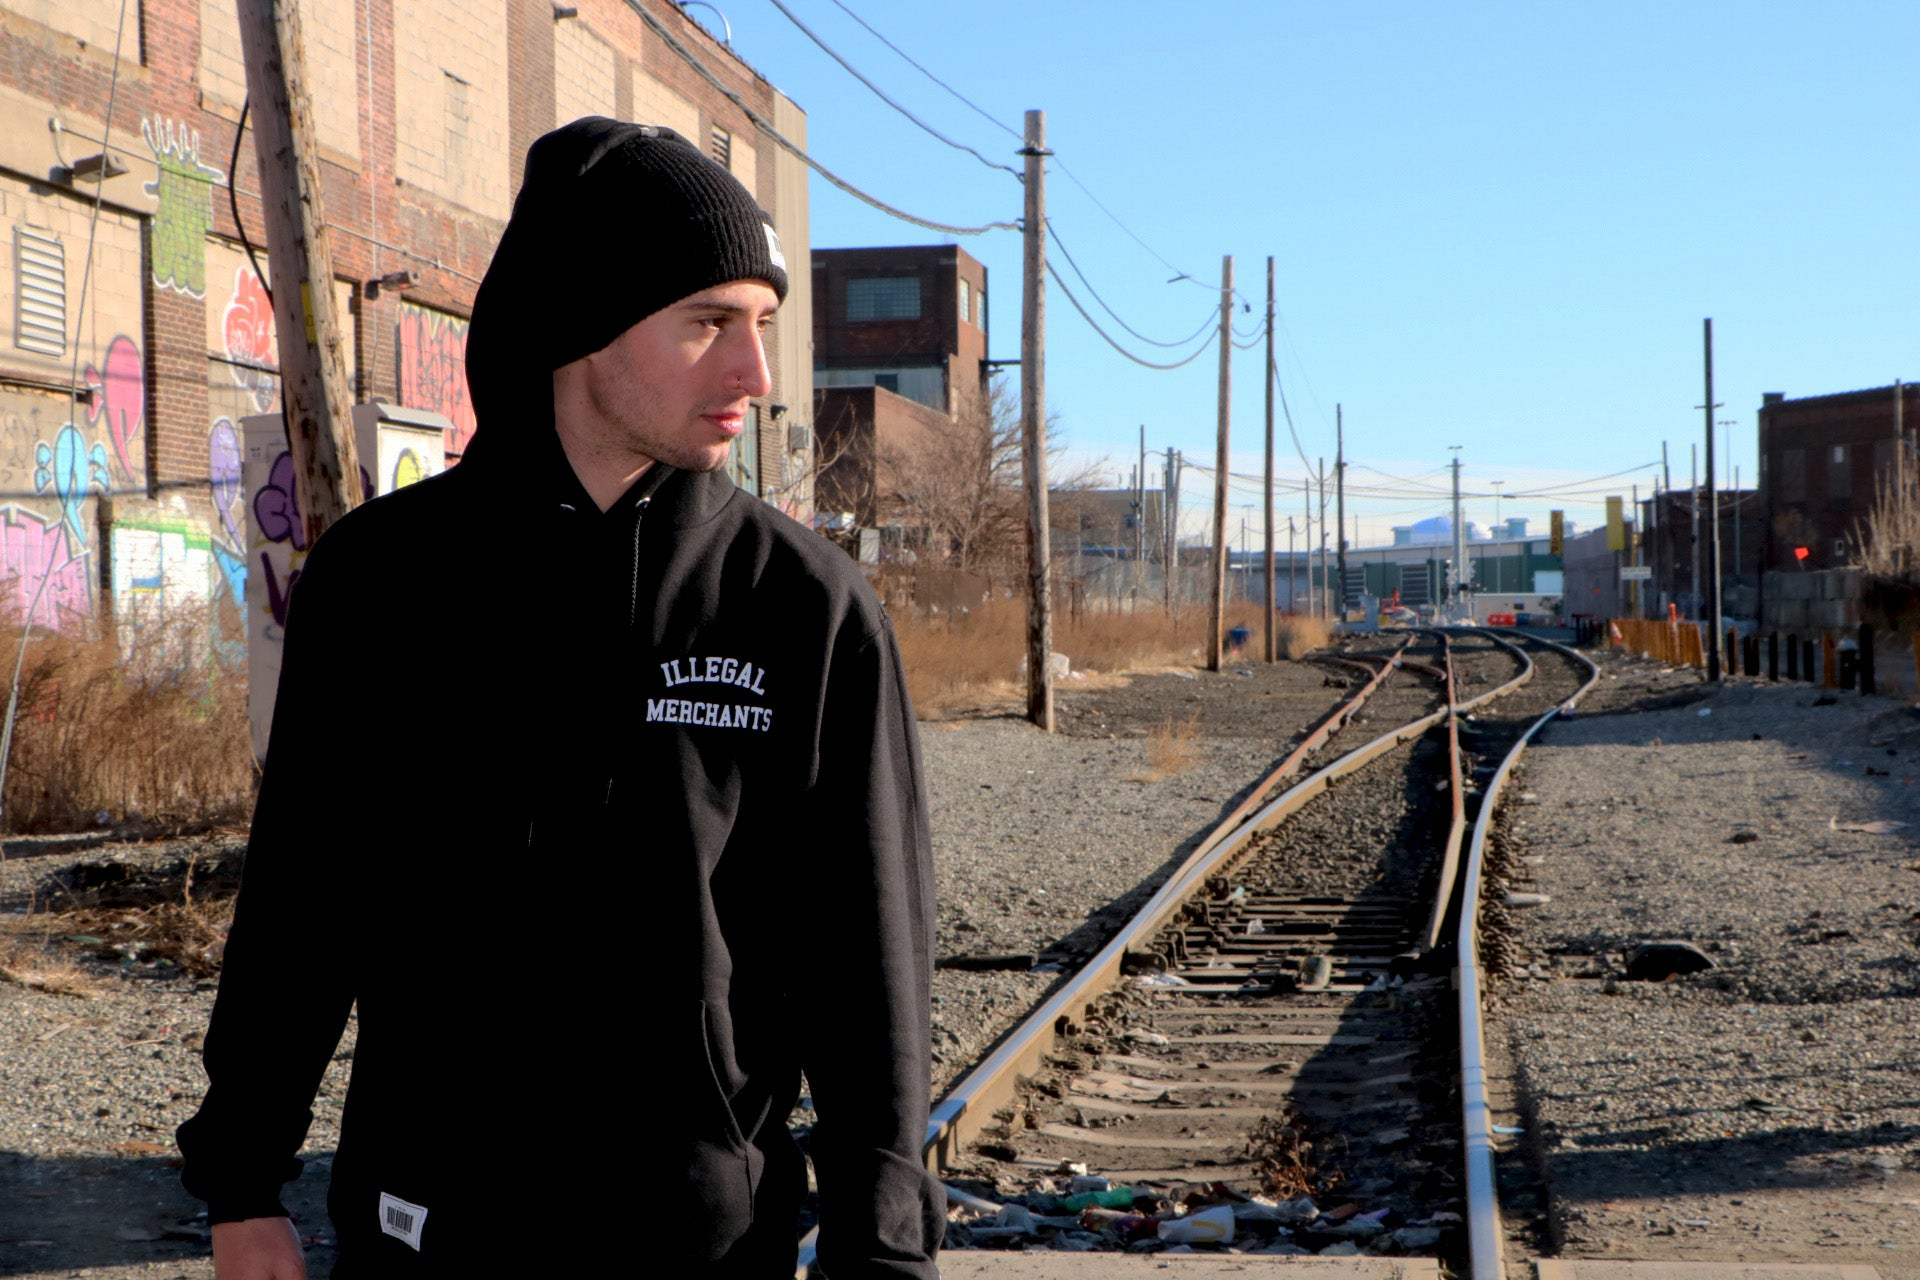 V4 New York Illegal Merchants Hoody in Black V4NY